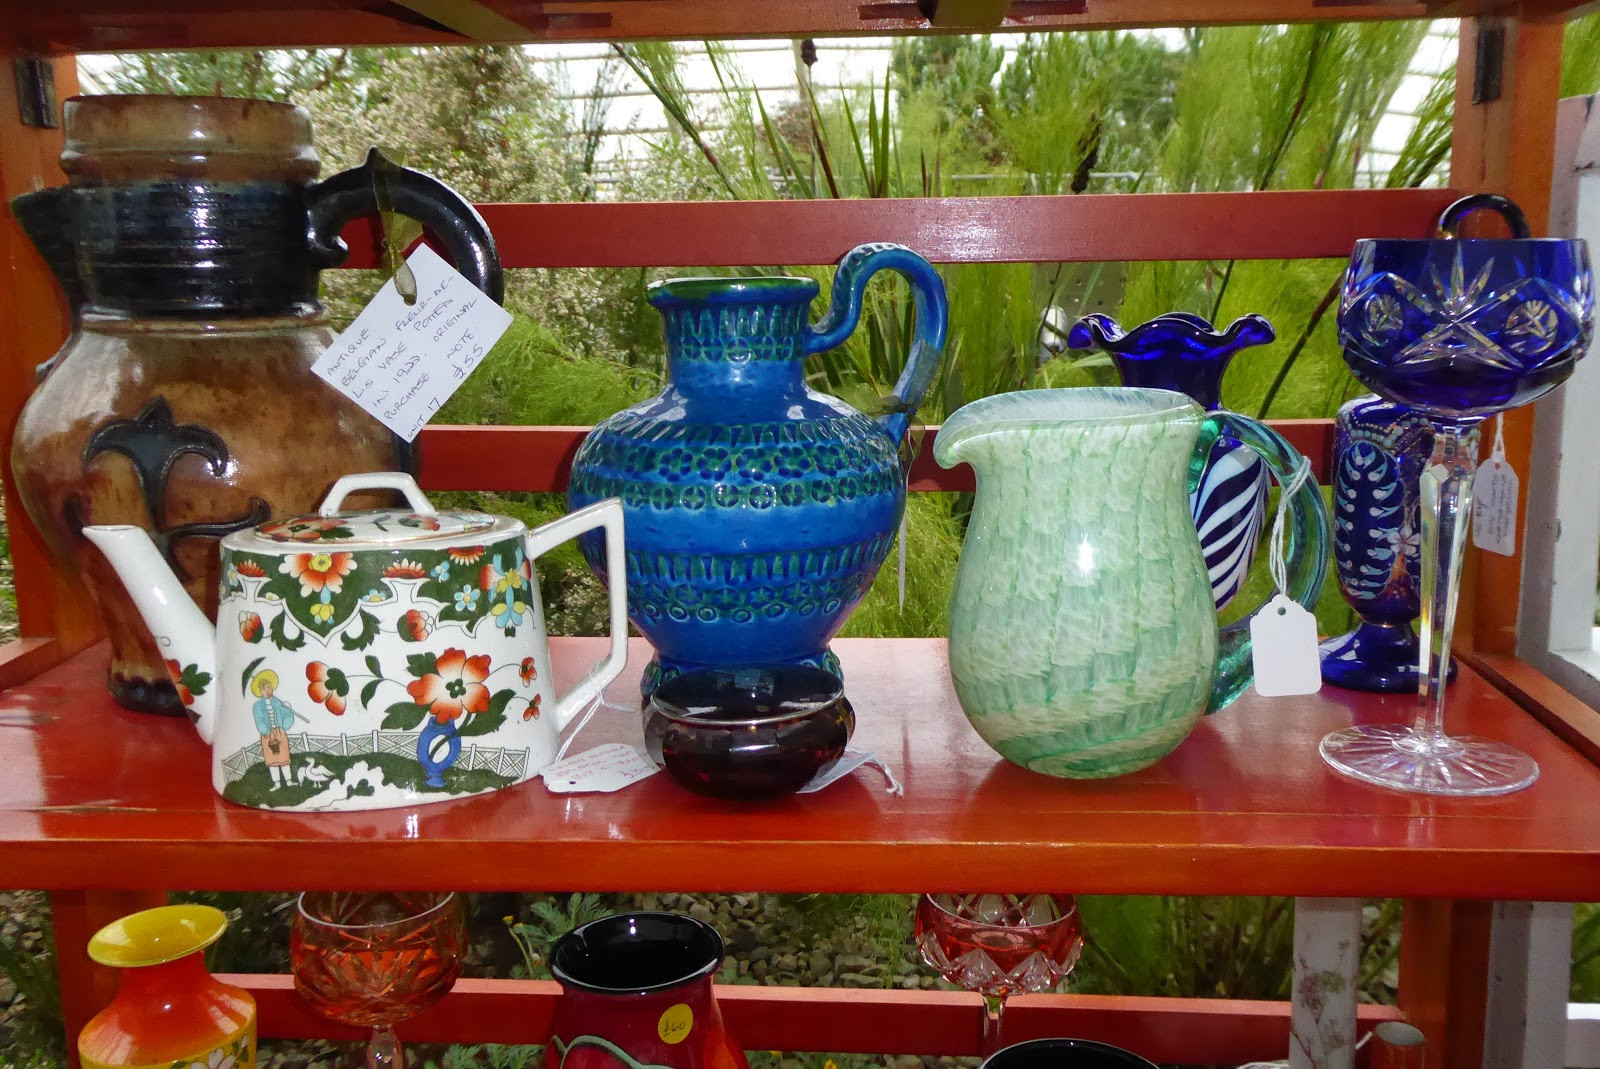 23 Awesome Green Glass Vases for Sale 2021 free download green glass vases for sale of codlinsandcream2 phew that was a tiring weekend within a big hefty fleur de lis jug from belgium includes sale docket dated 1922 bittori jug really heavy green